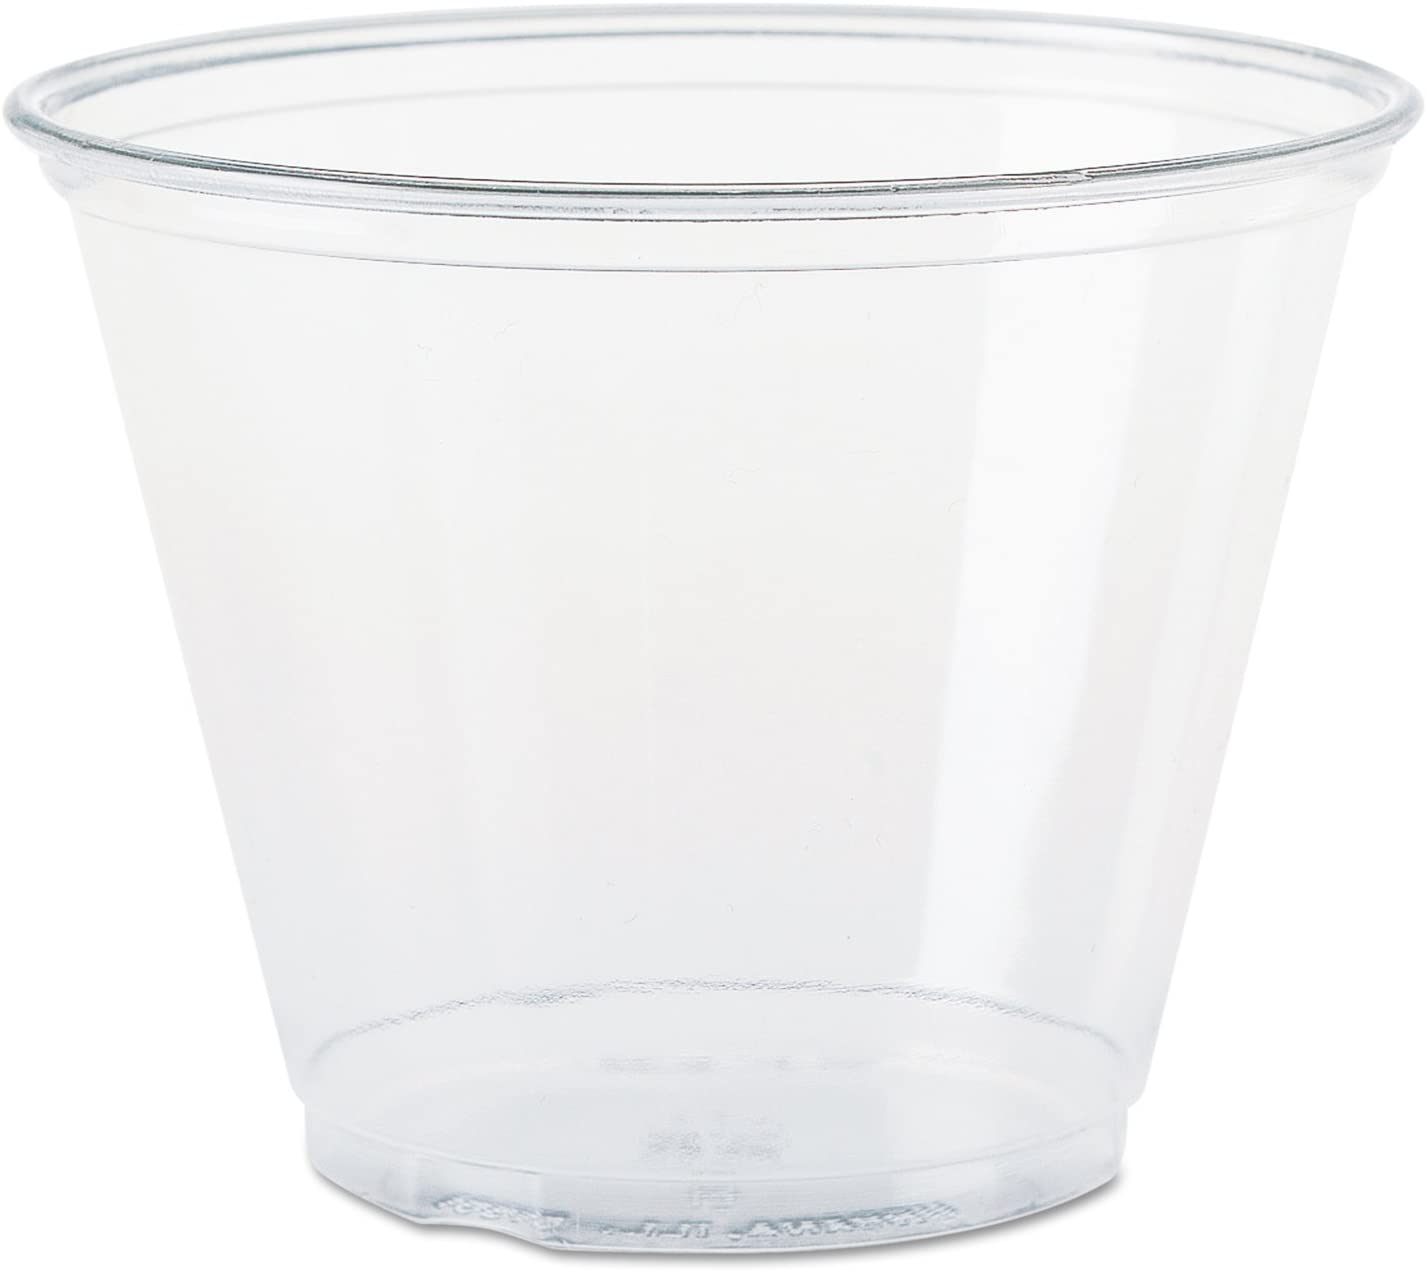 Solo Foodservice TP9R Cold Cup, 9 oz, Clear Squat (Pack of 200)